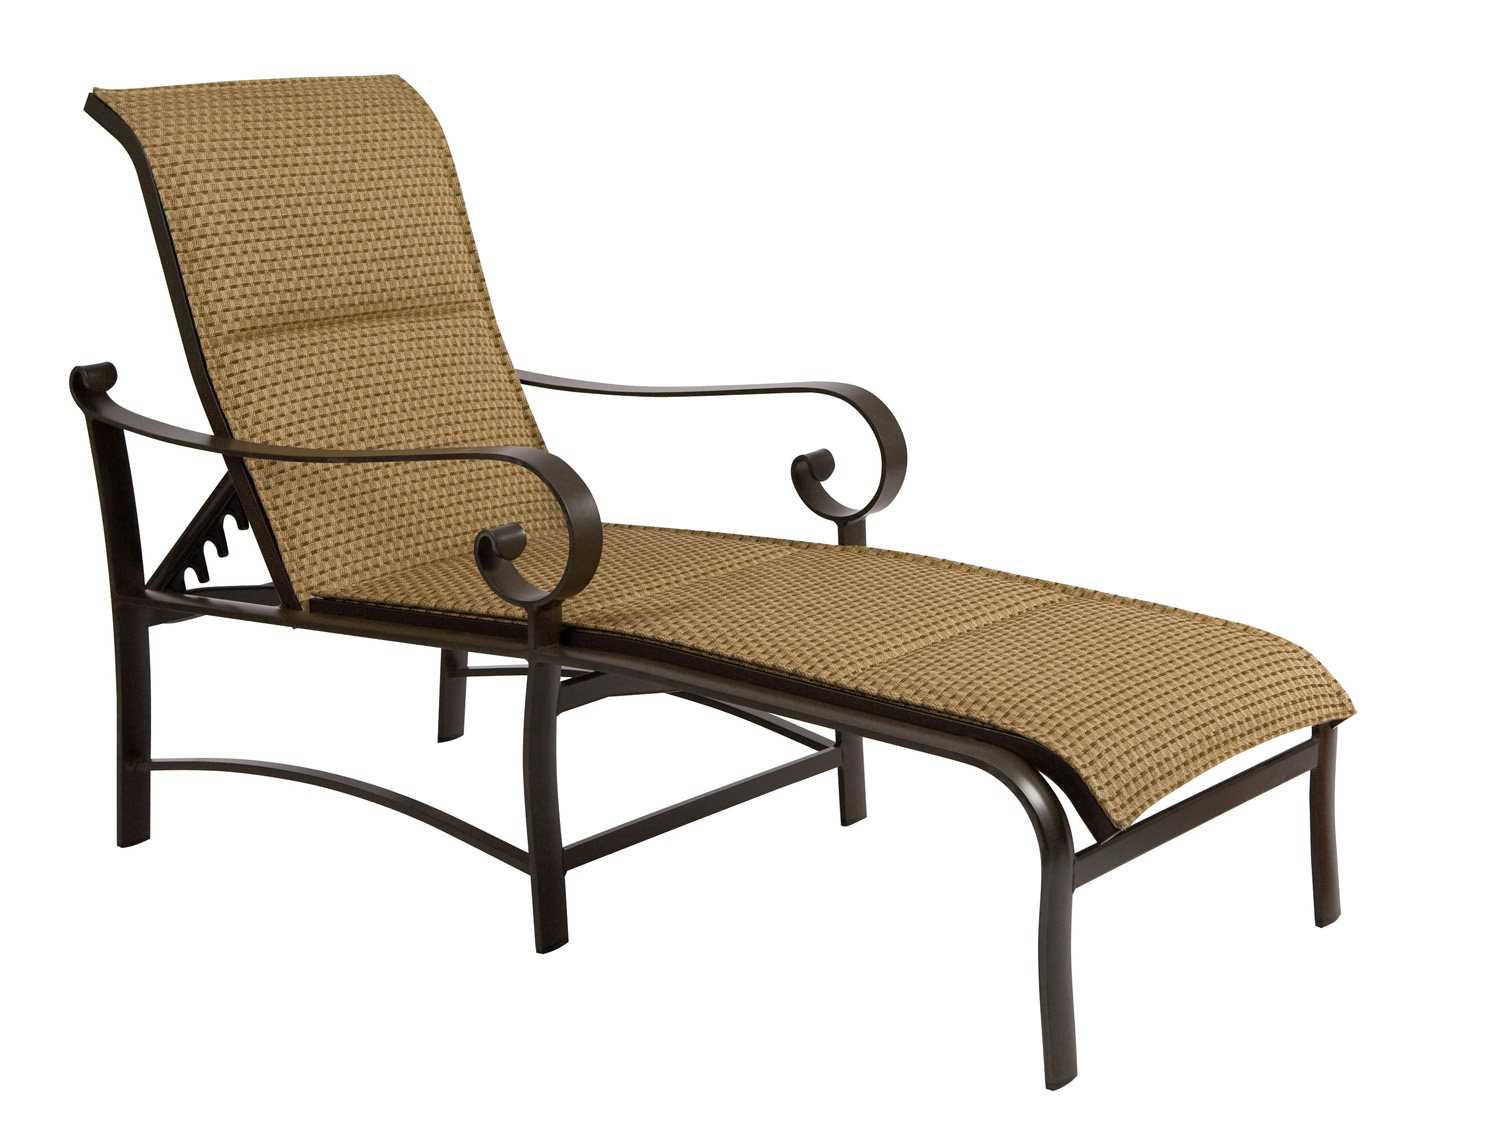 Woodard belden padded sling aluminum adjustable chaise for Chaise lounge aluminum